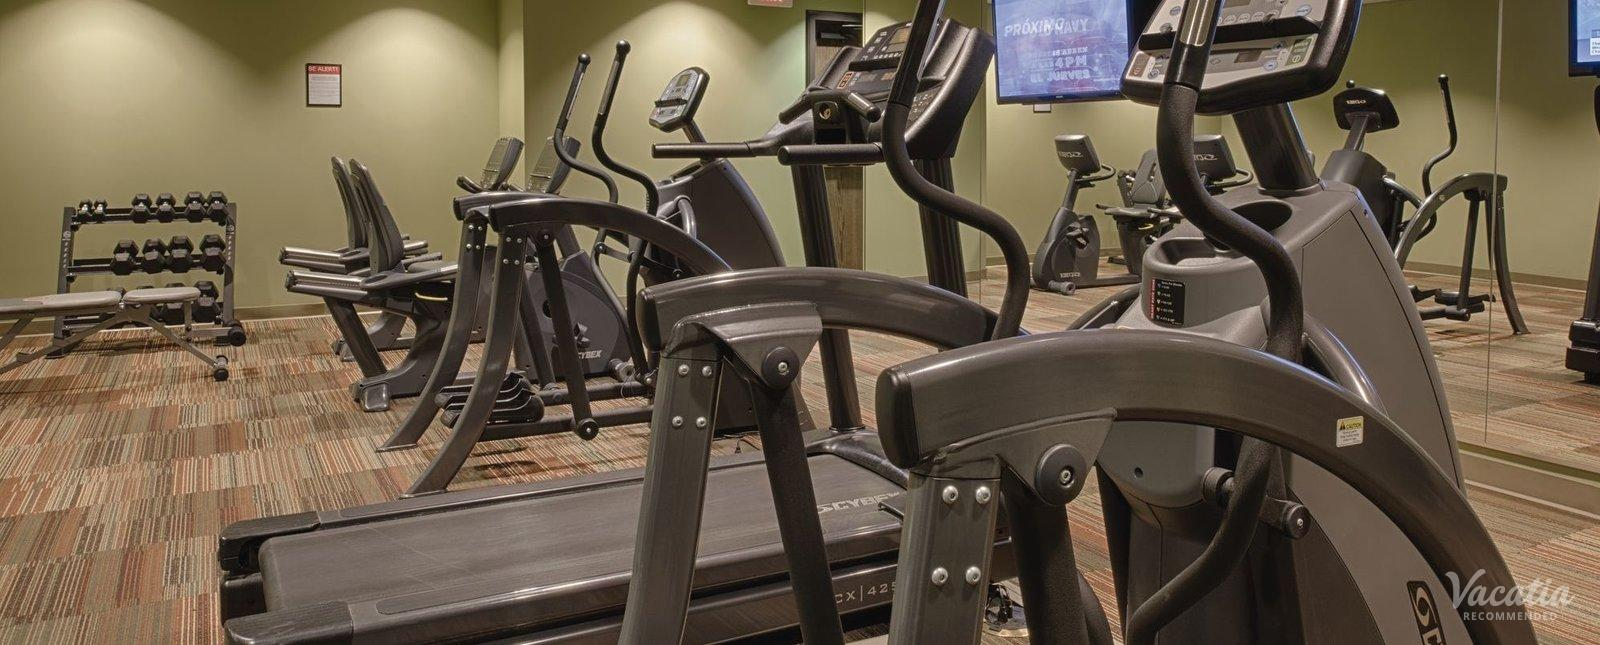 Wyndham La Cascada Fitness Center